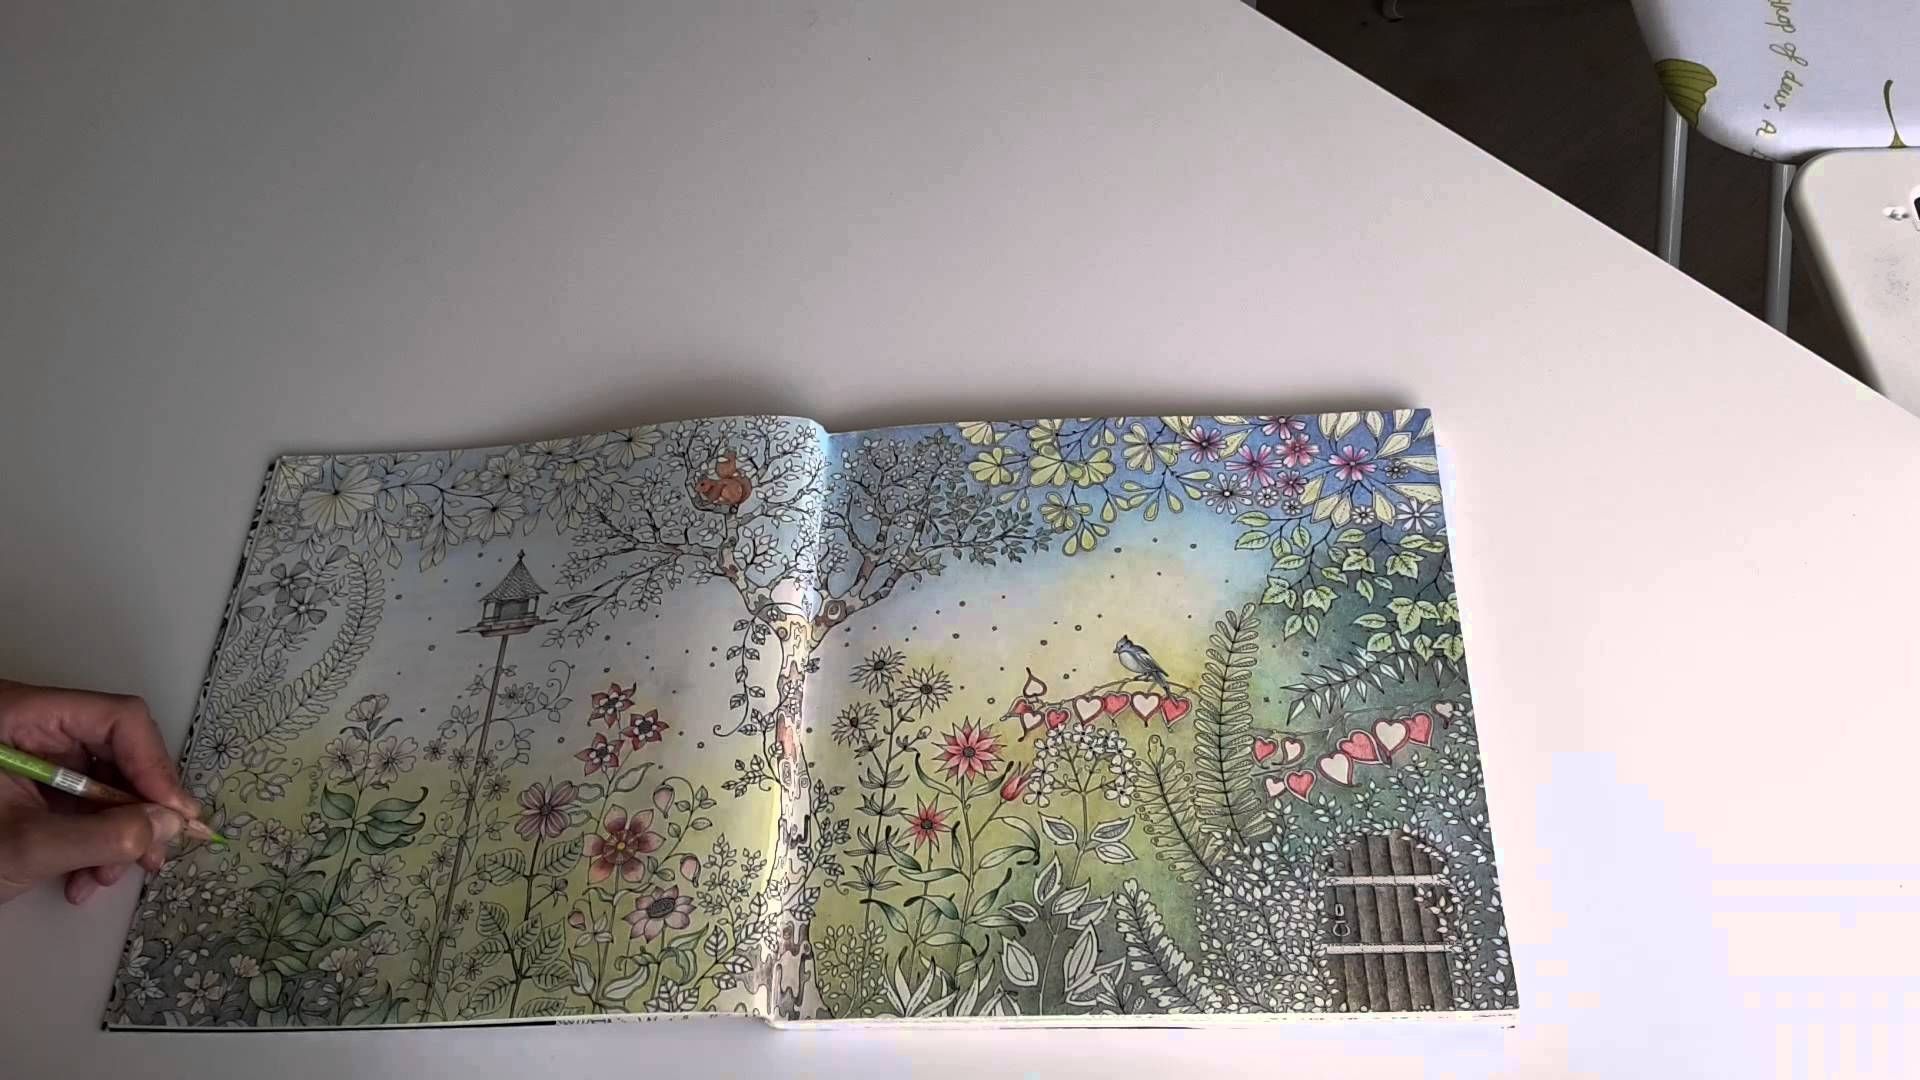 Secret Garden Coloring Book Pens Or Pencils For Pencils